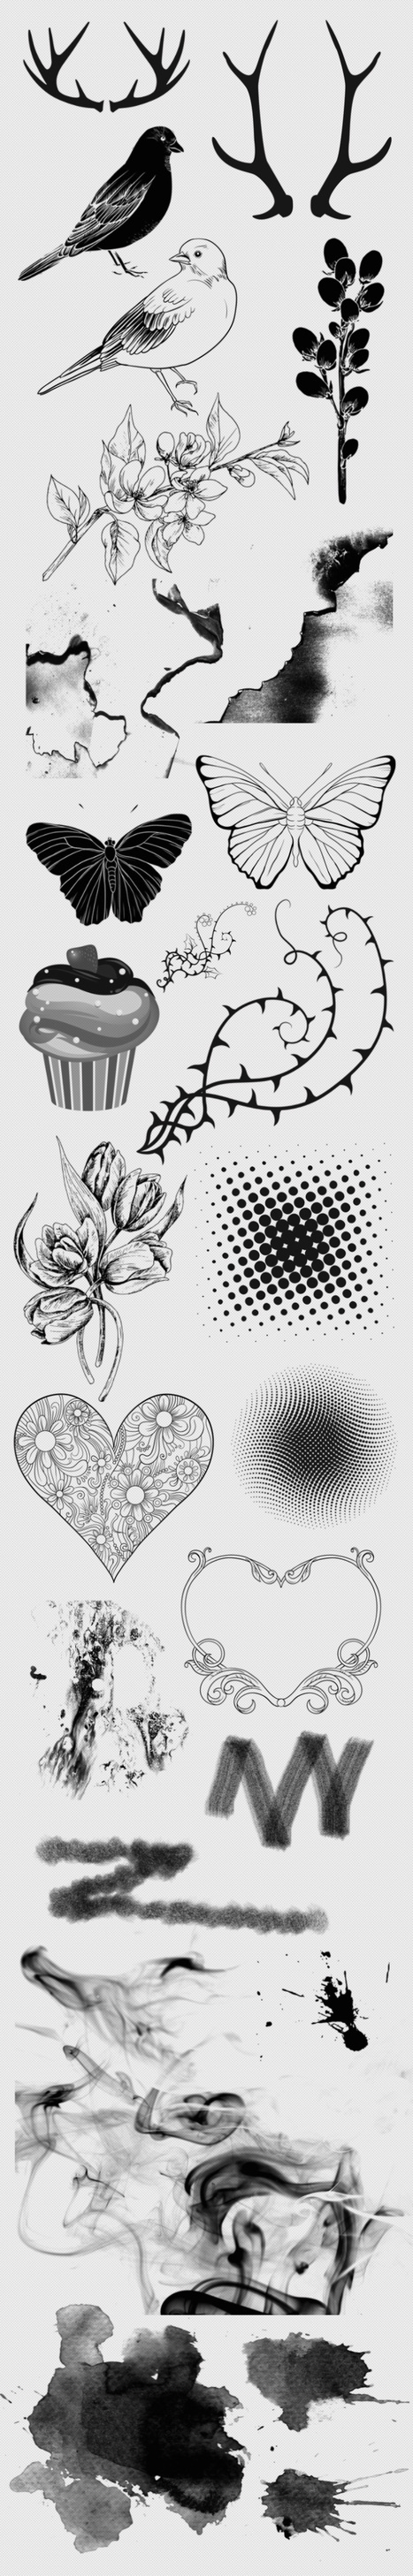 Free Download : 24 Photoshop brushes : birds, flowers, butterflies, hearts, smoke brushes + more | WebWild | Scoop.it